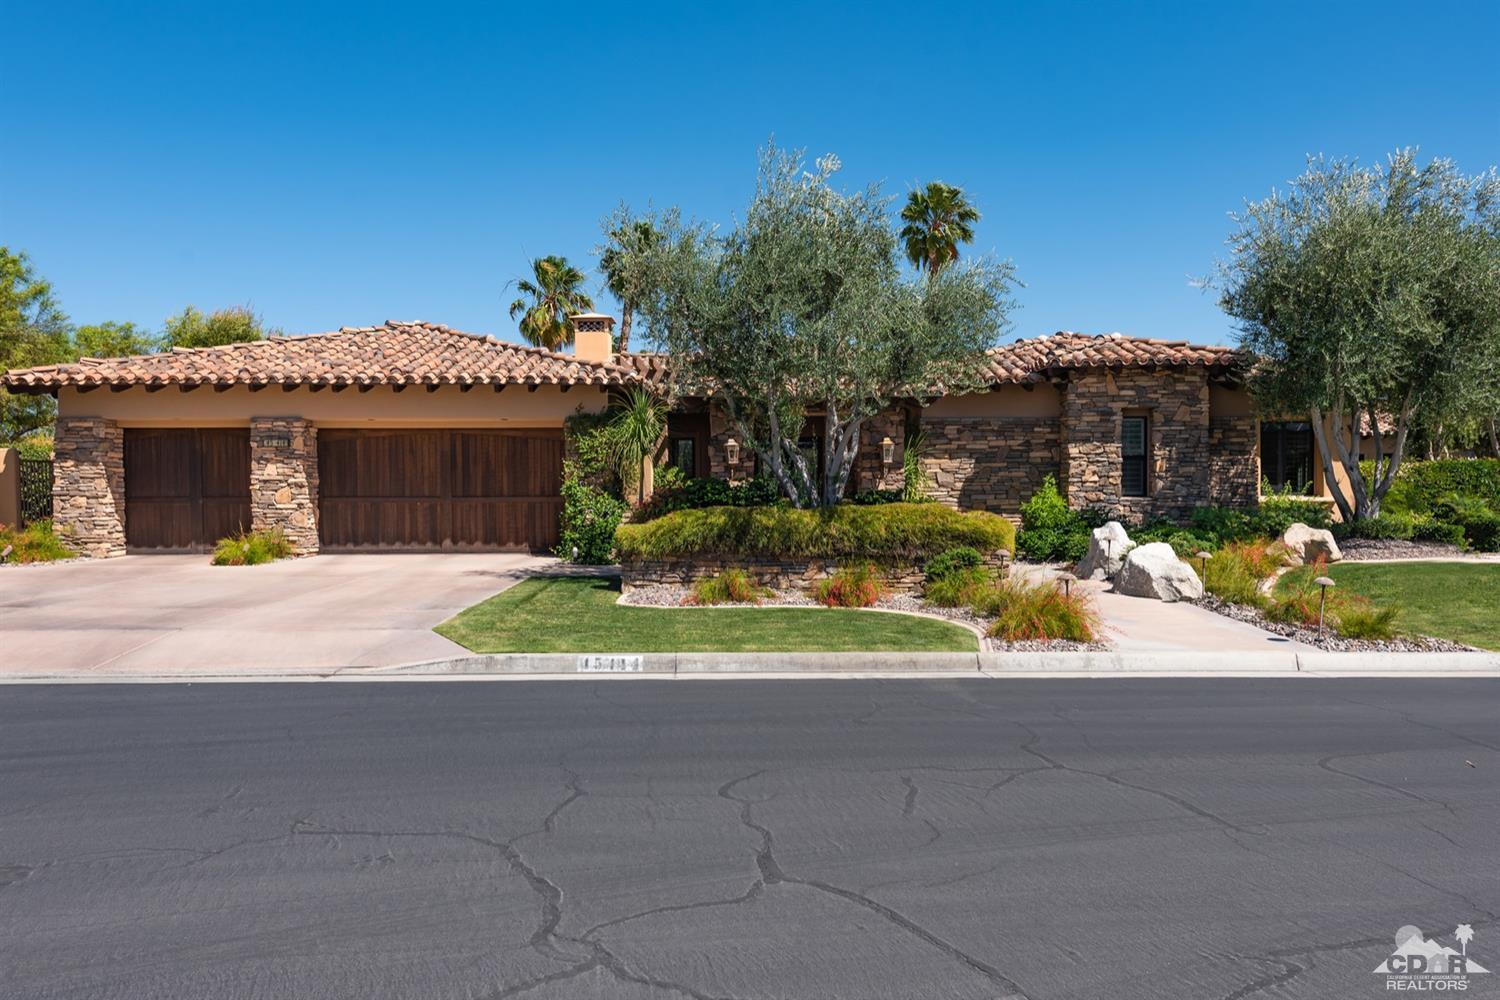 Image Number 1 for 45414 Appian Way in Indian Wells